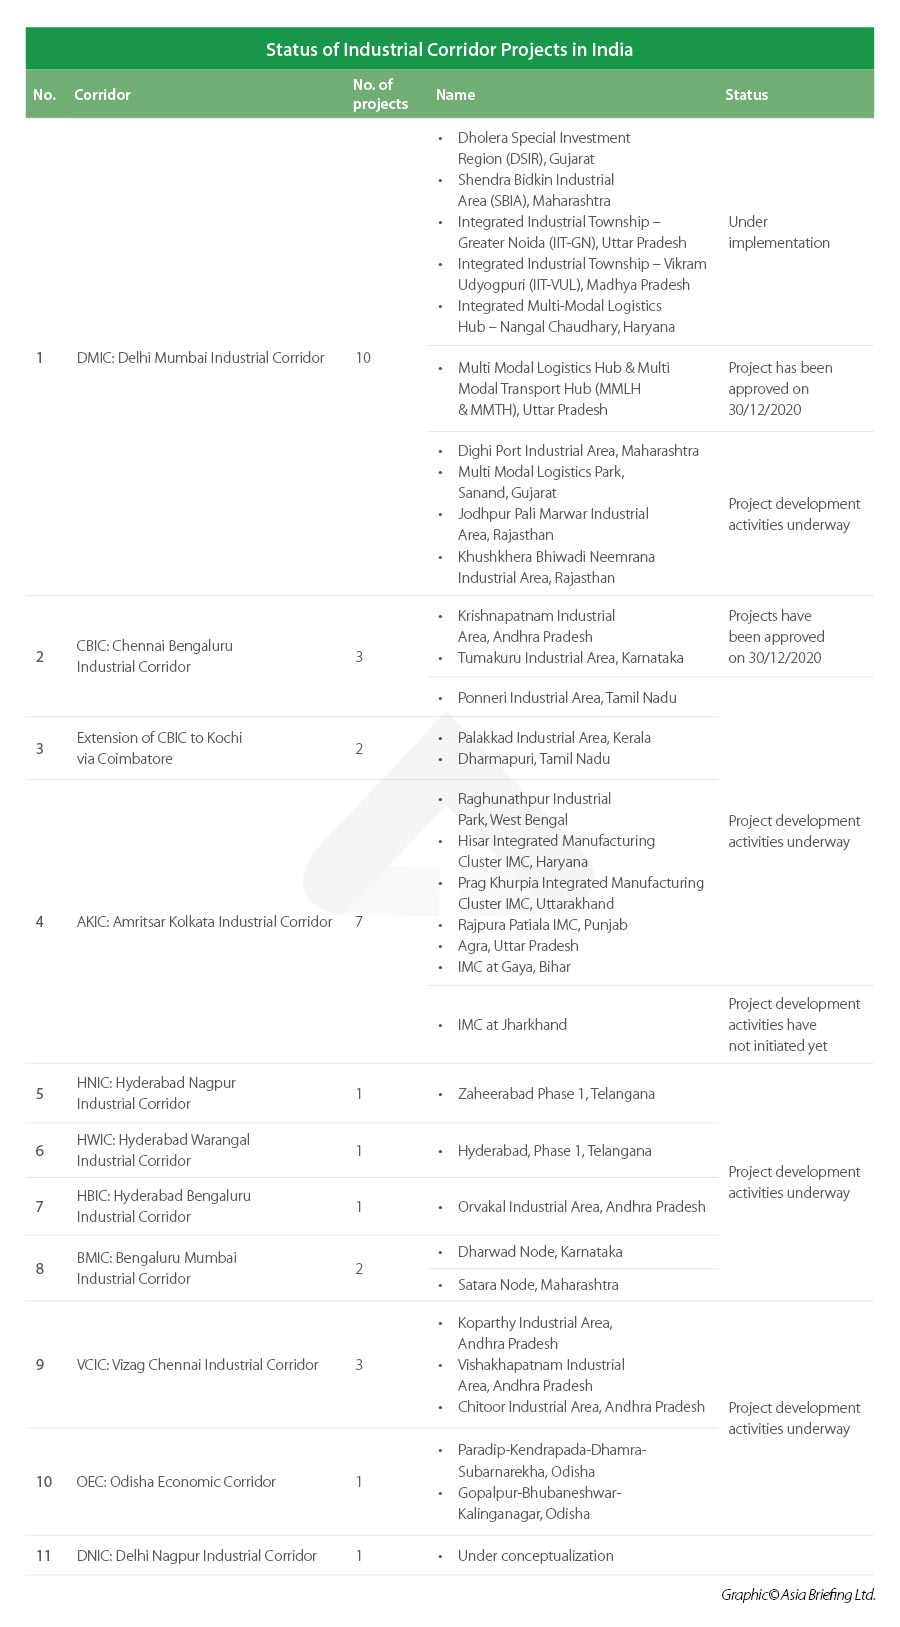 Industrial Corridor Projects in India